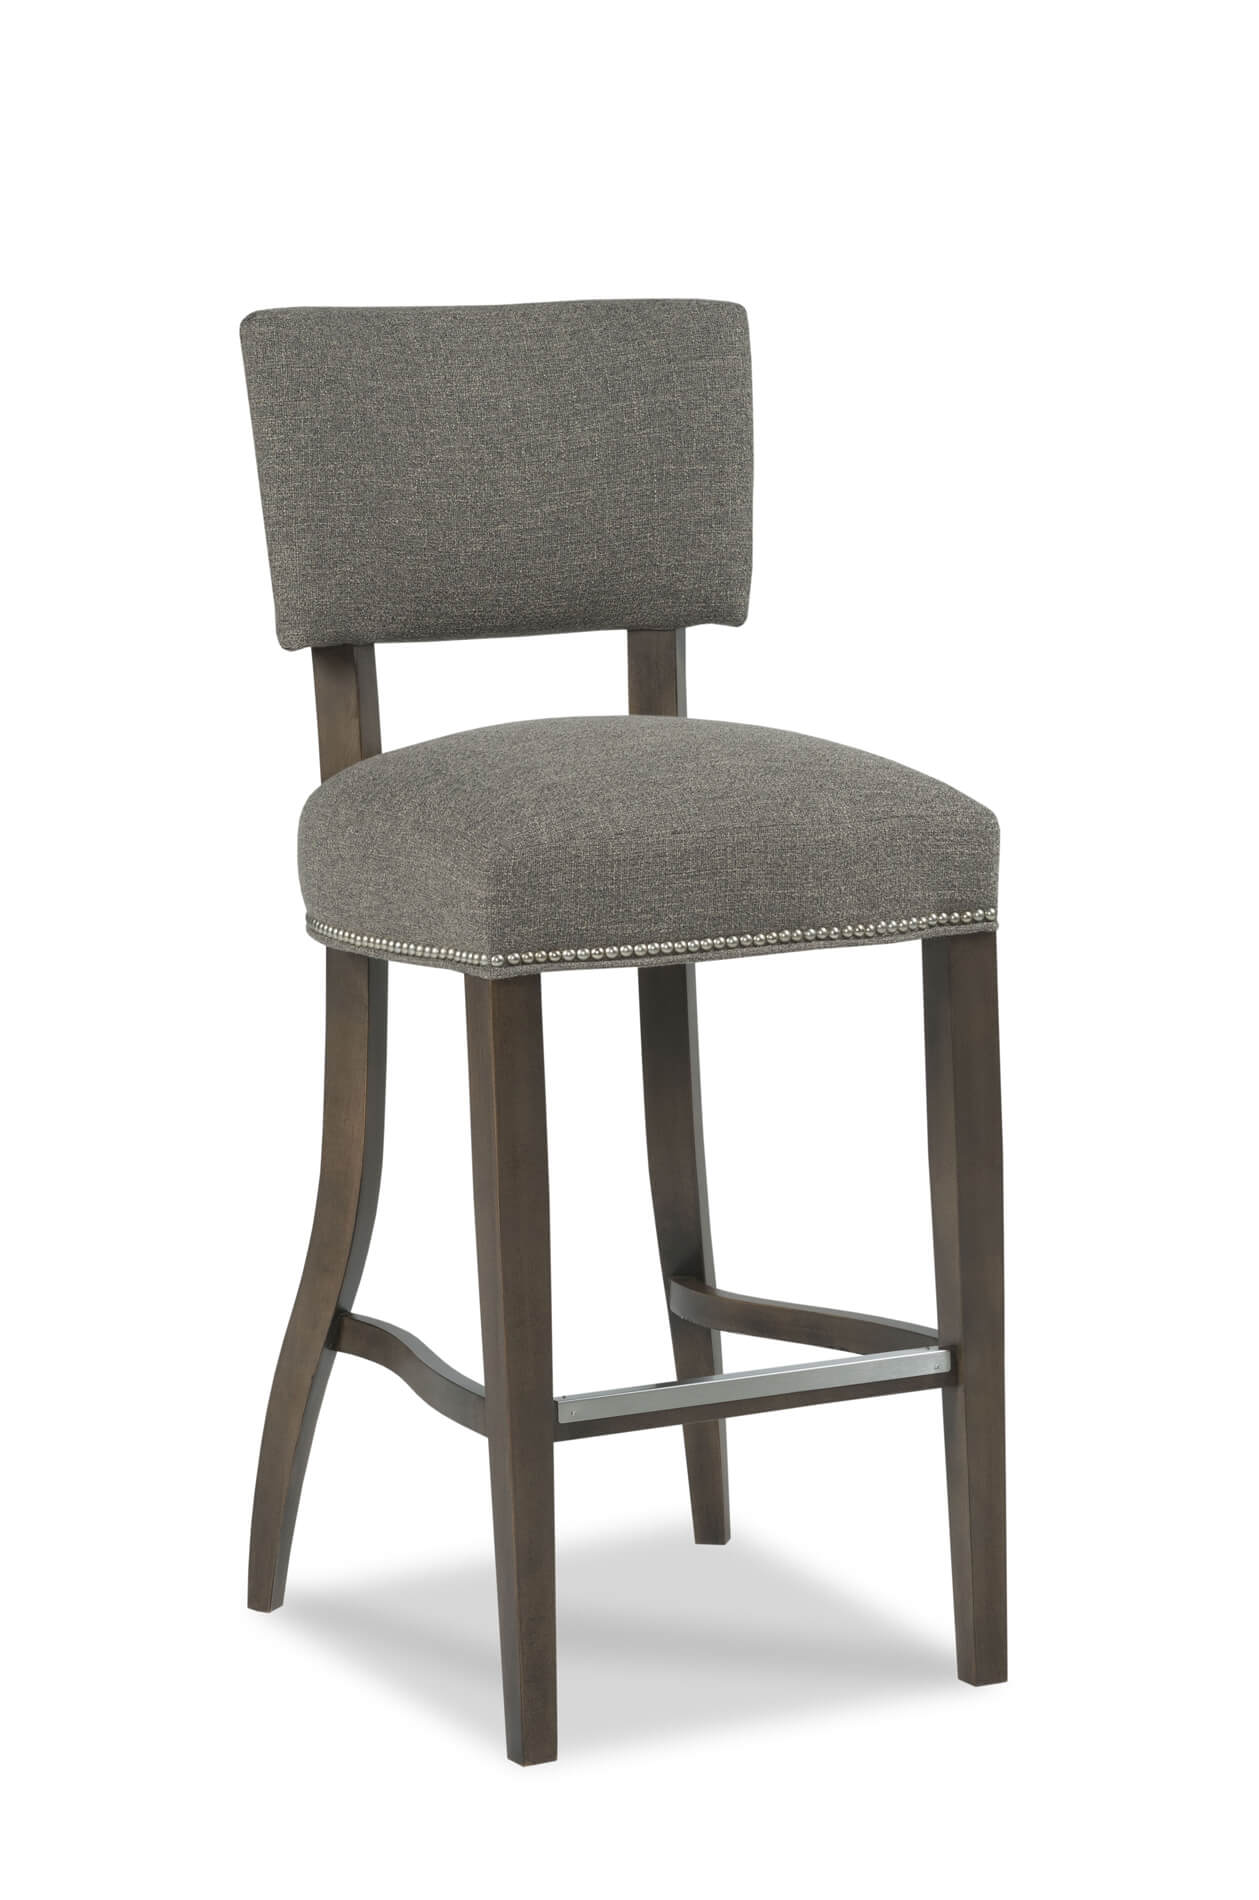 Fairfield's Niles Wooden Bar Stool with Nailhead Trim